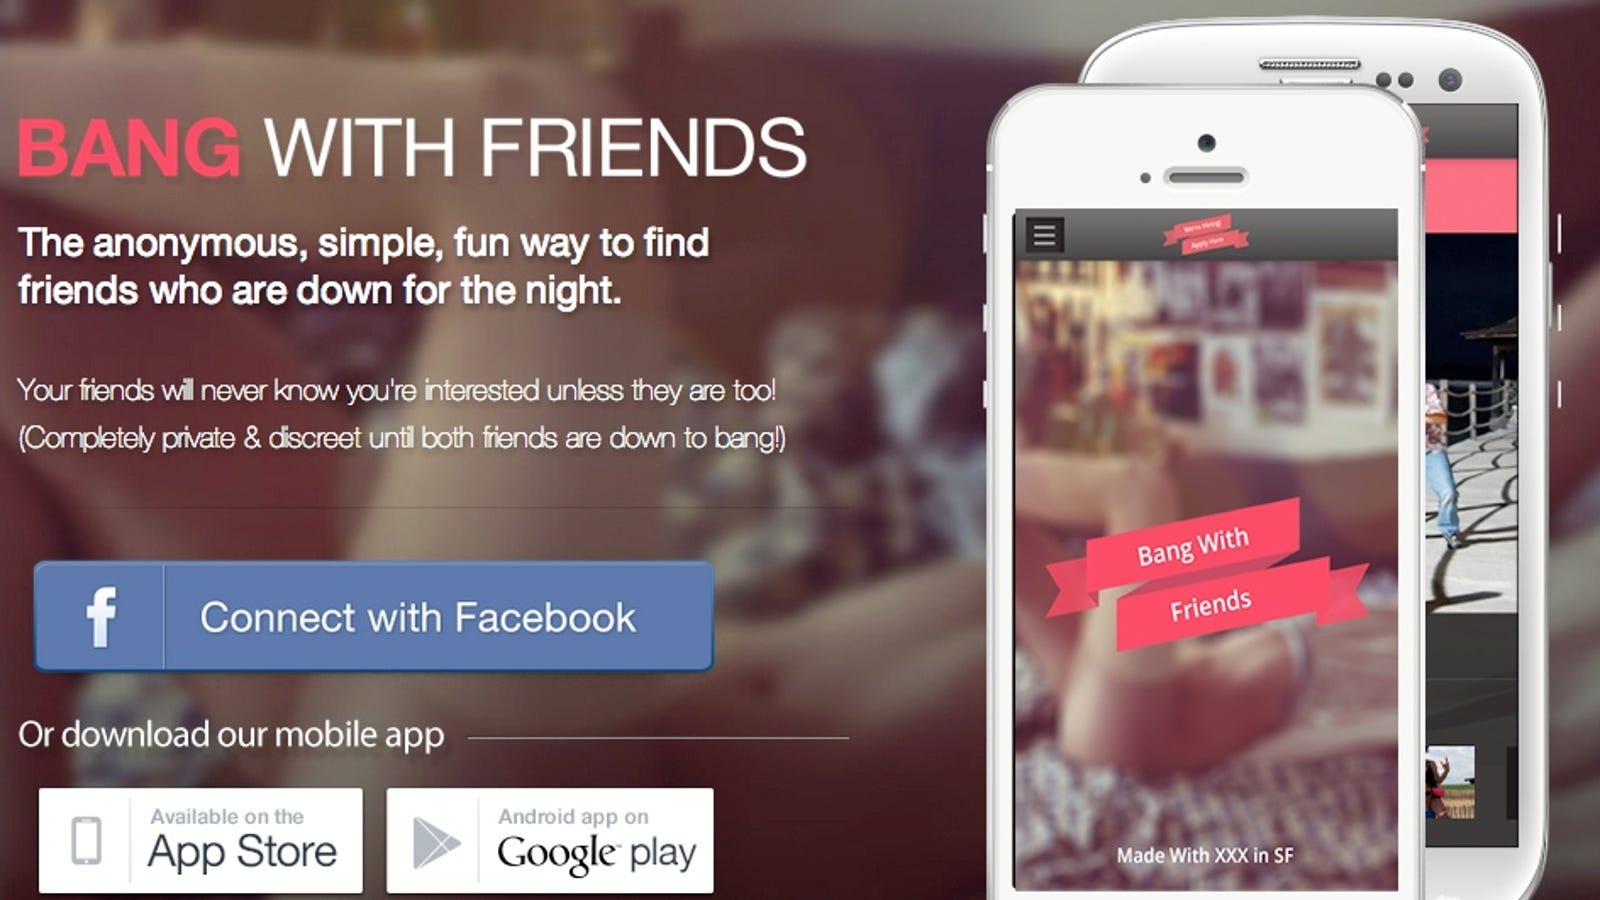 Bang with friends app download